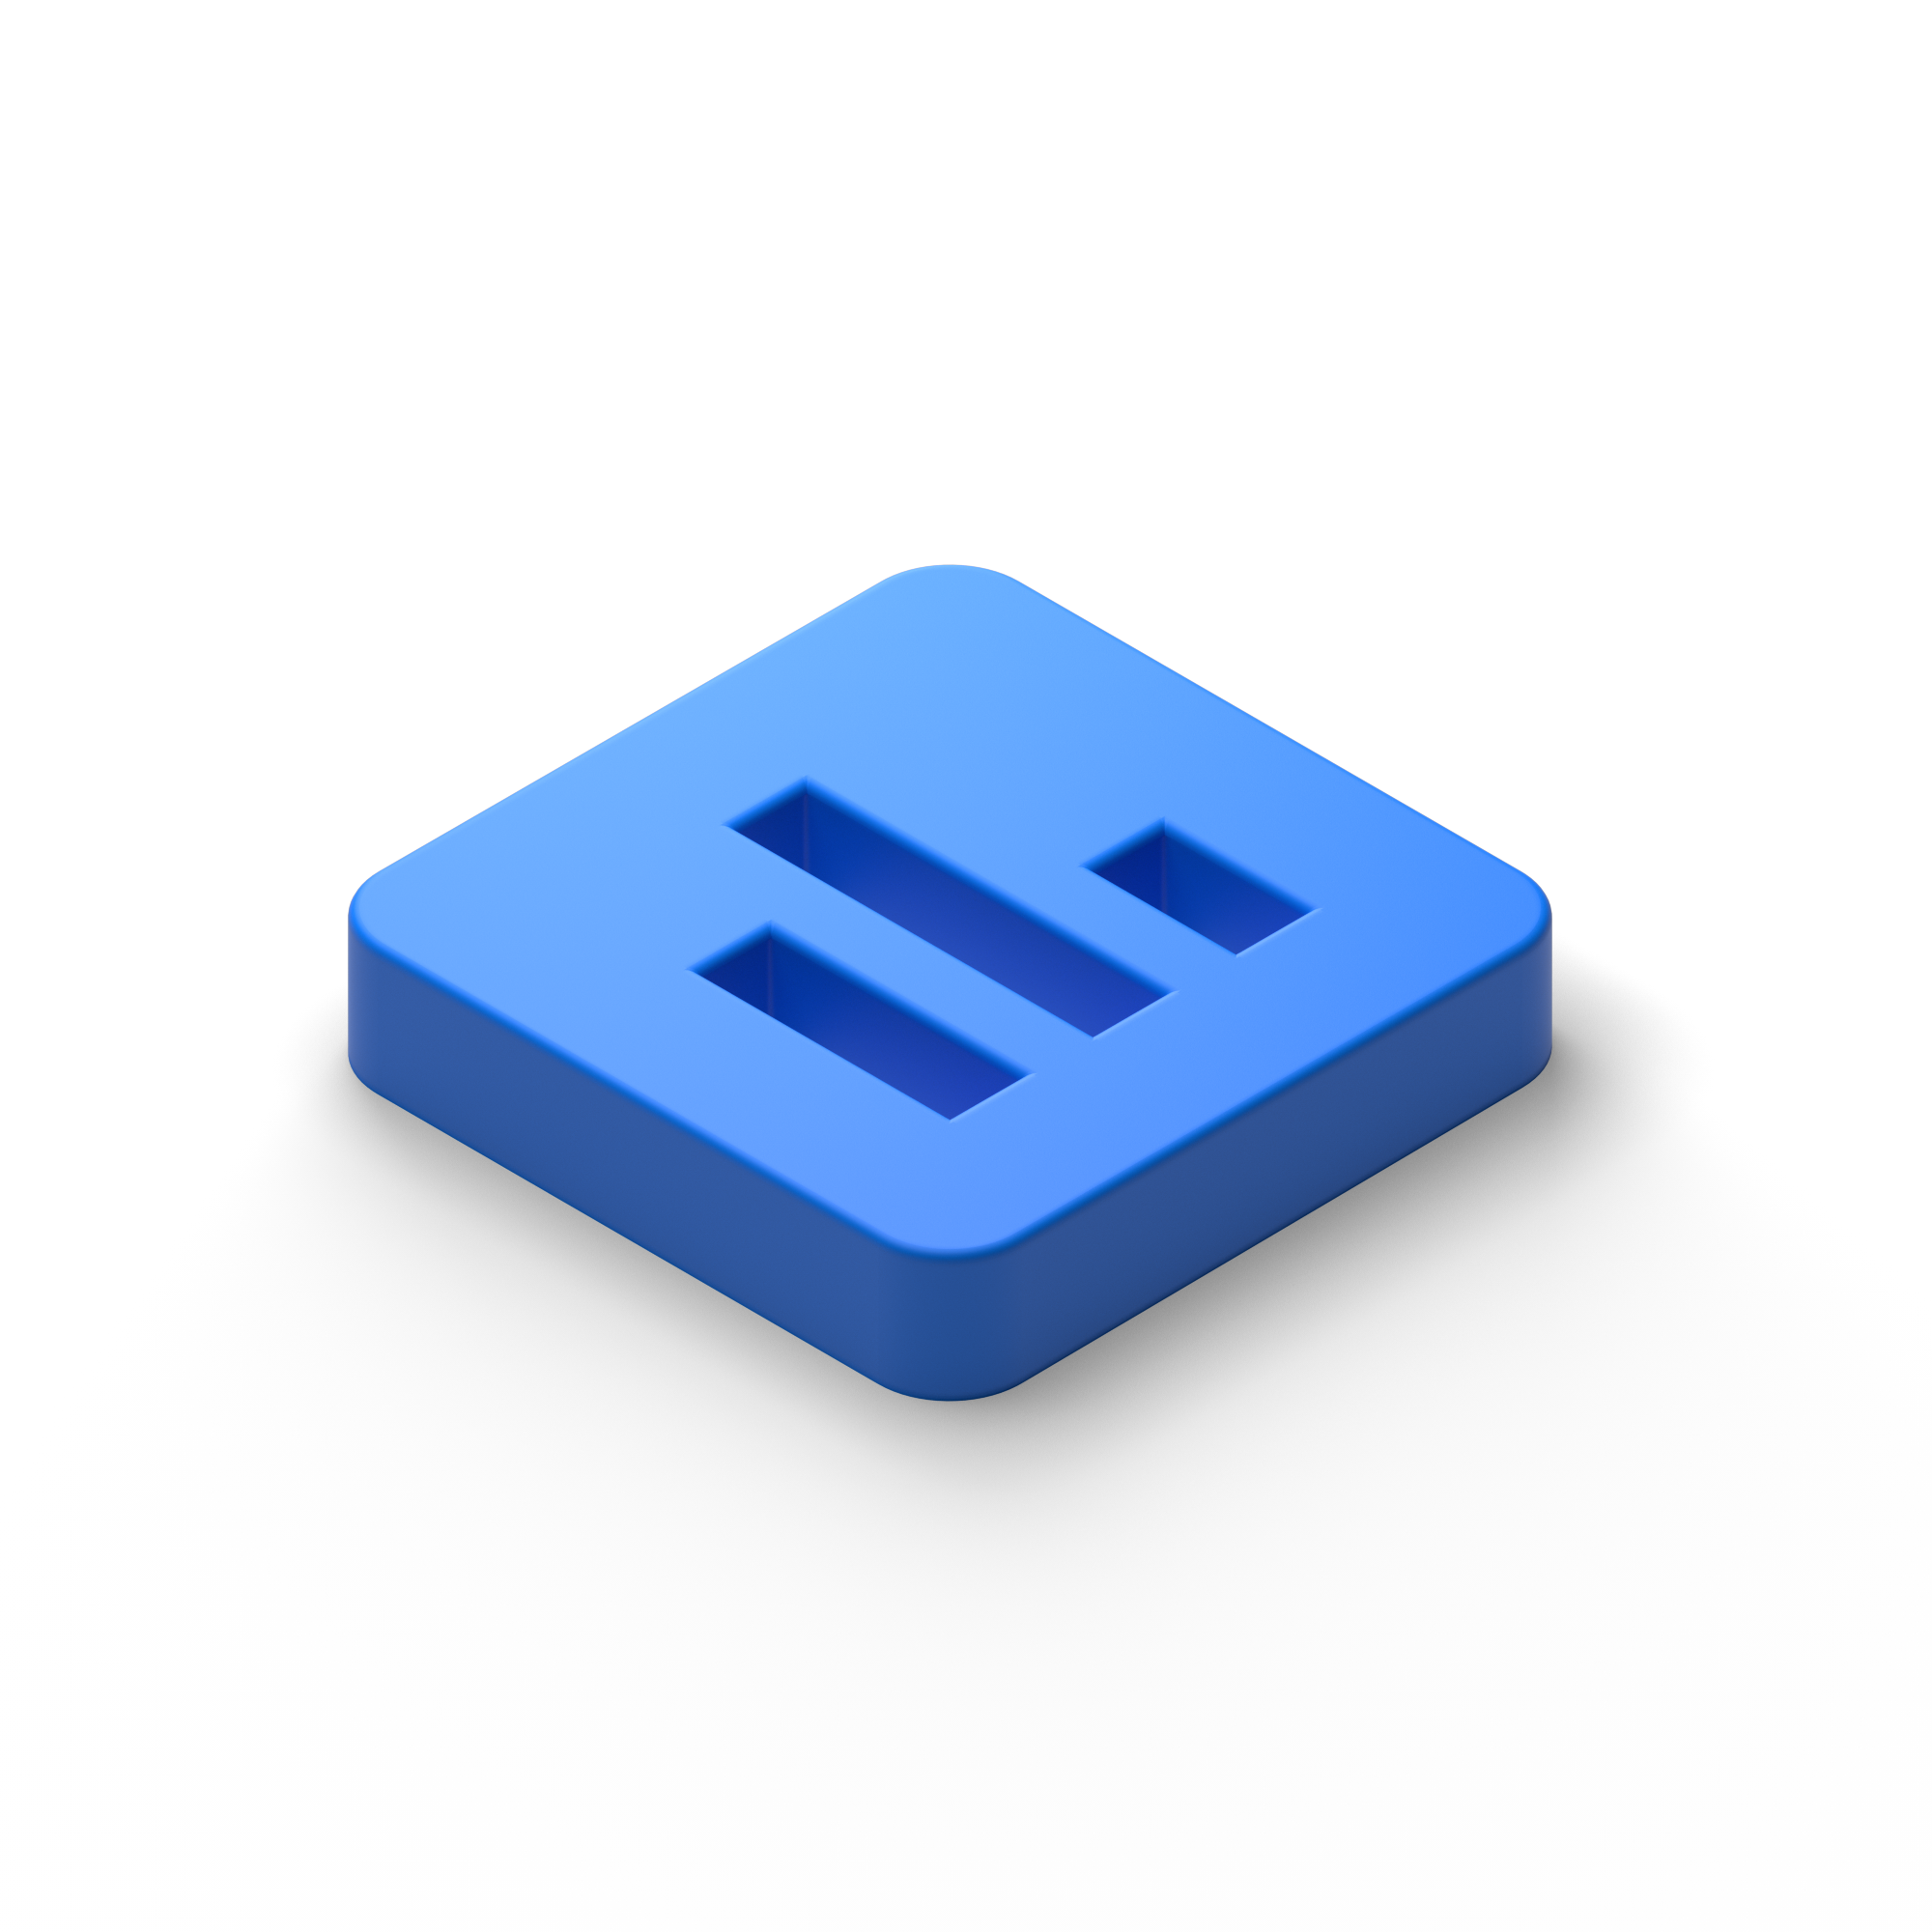 3D assessment icon